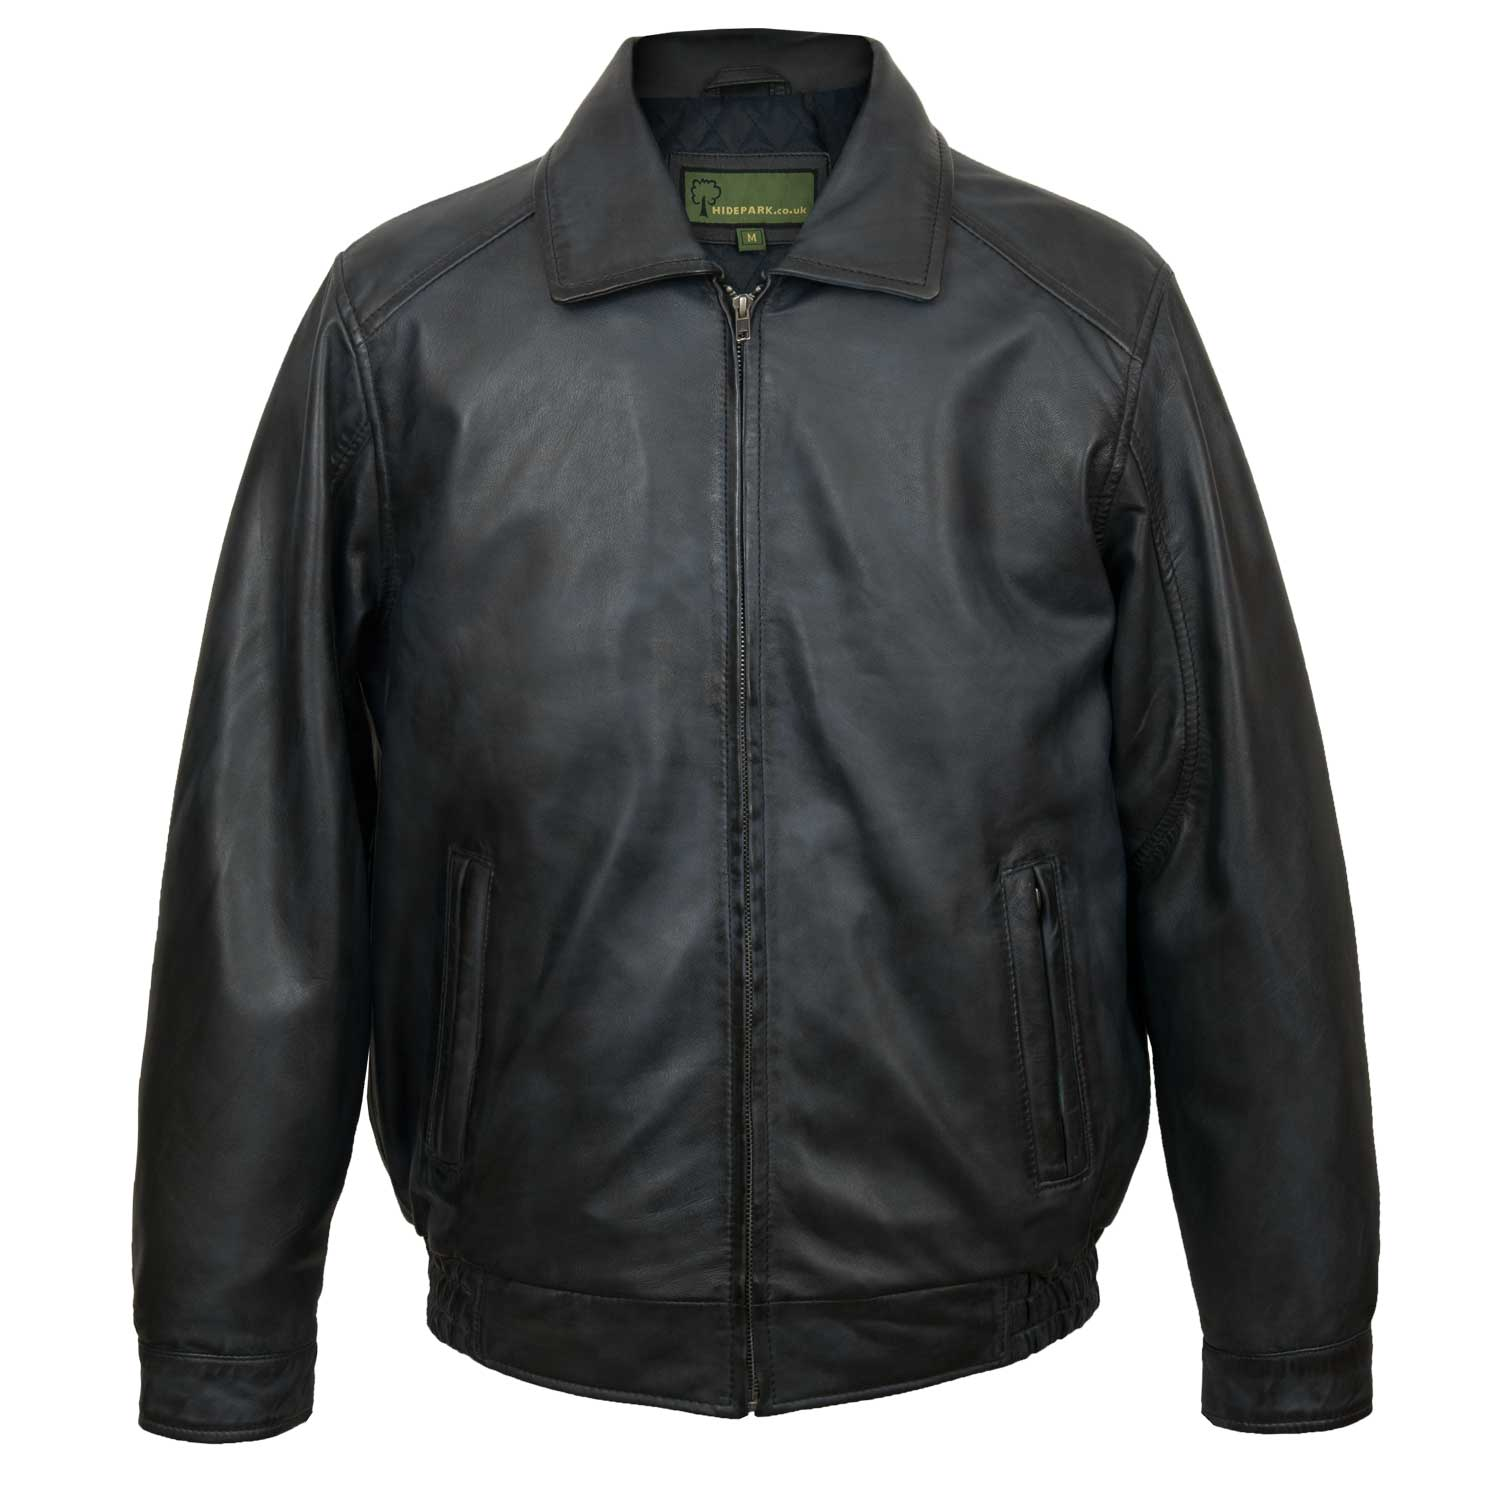 Men's Blue Leather Blouson Jacket: Will